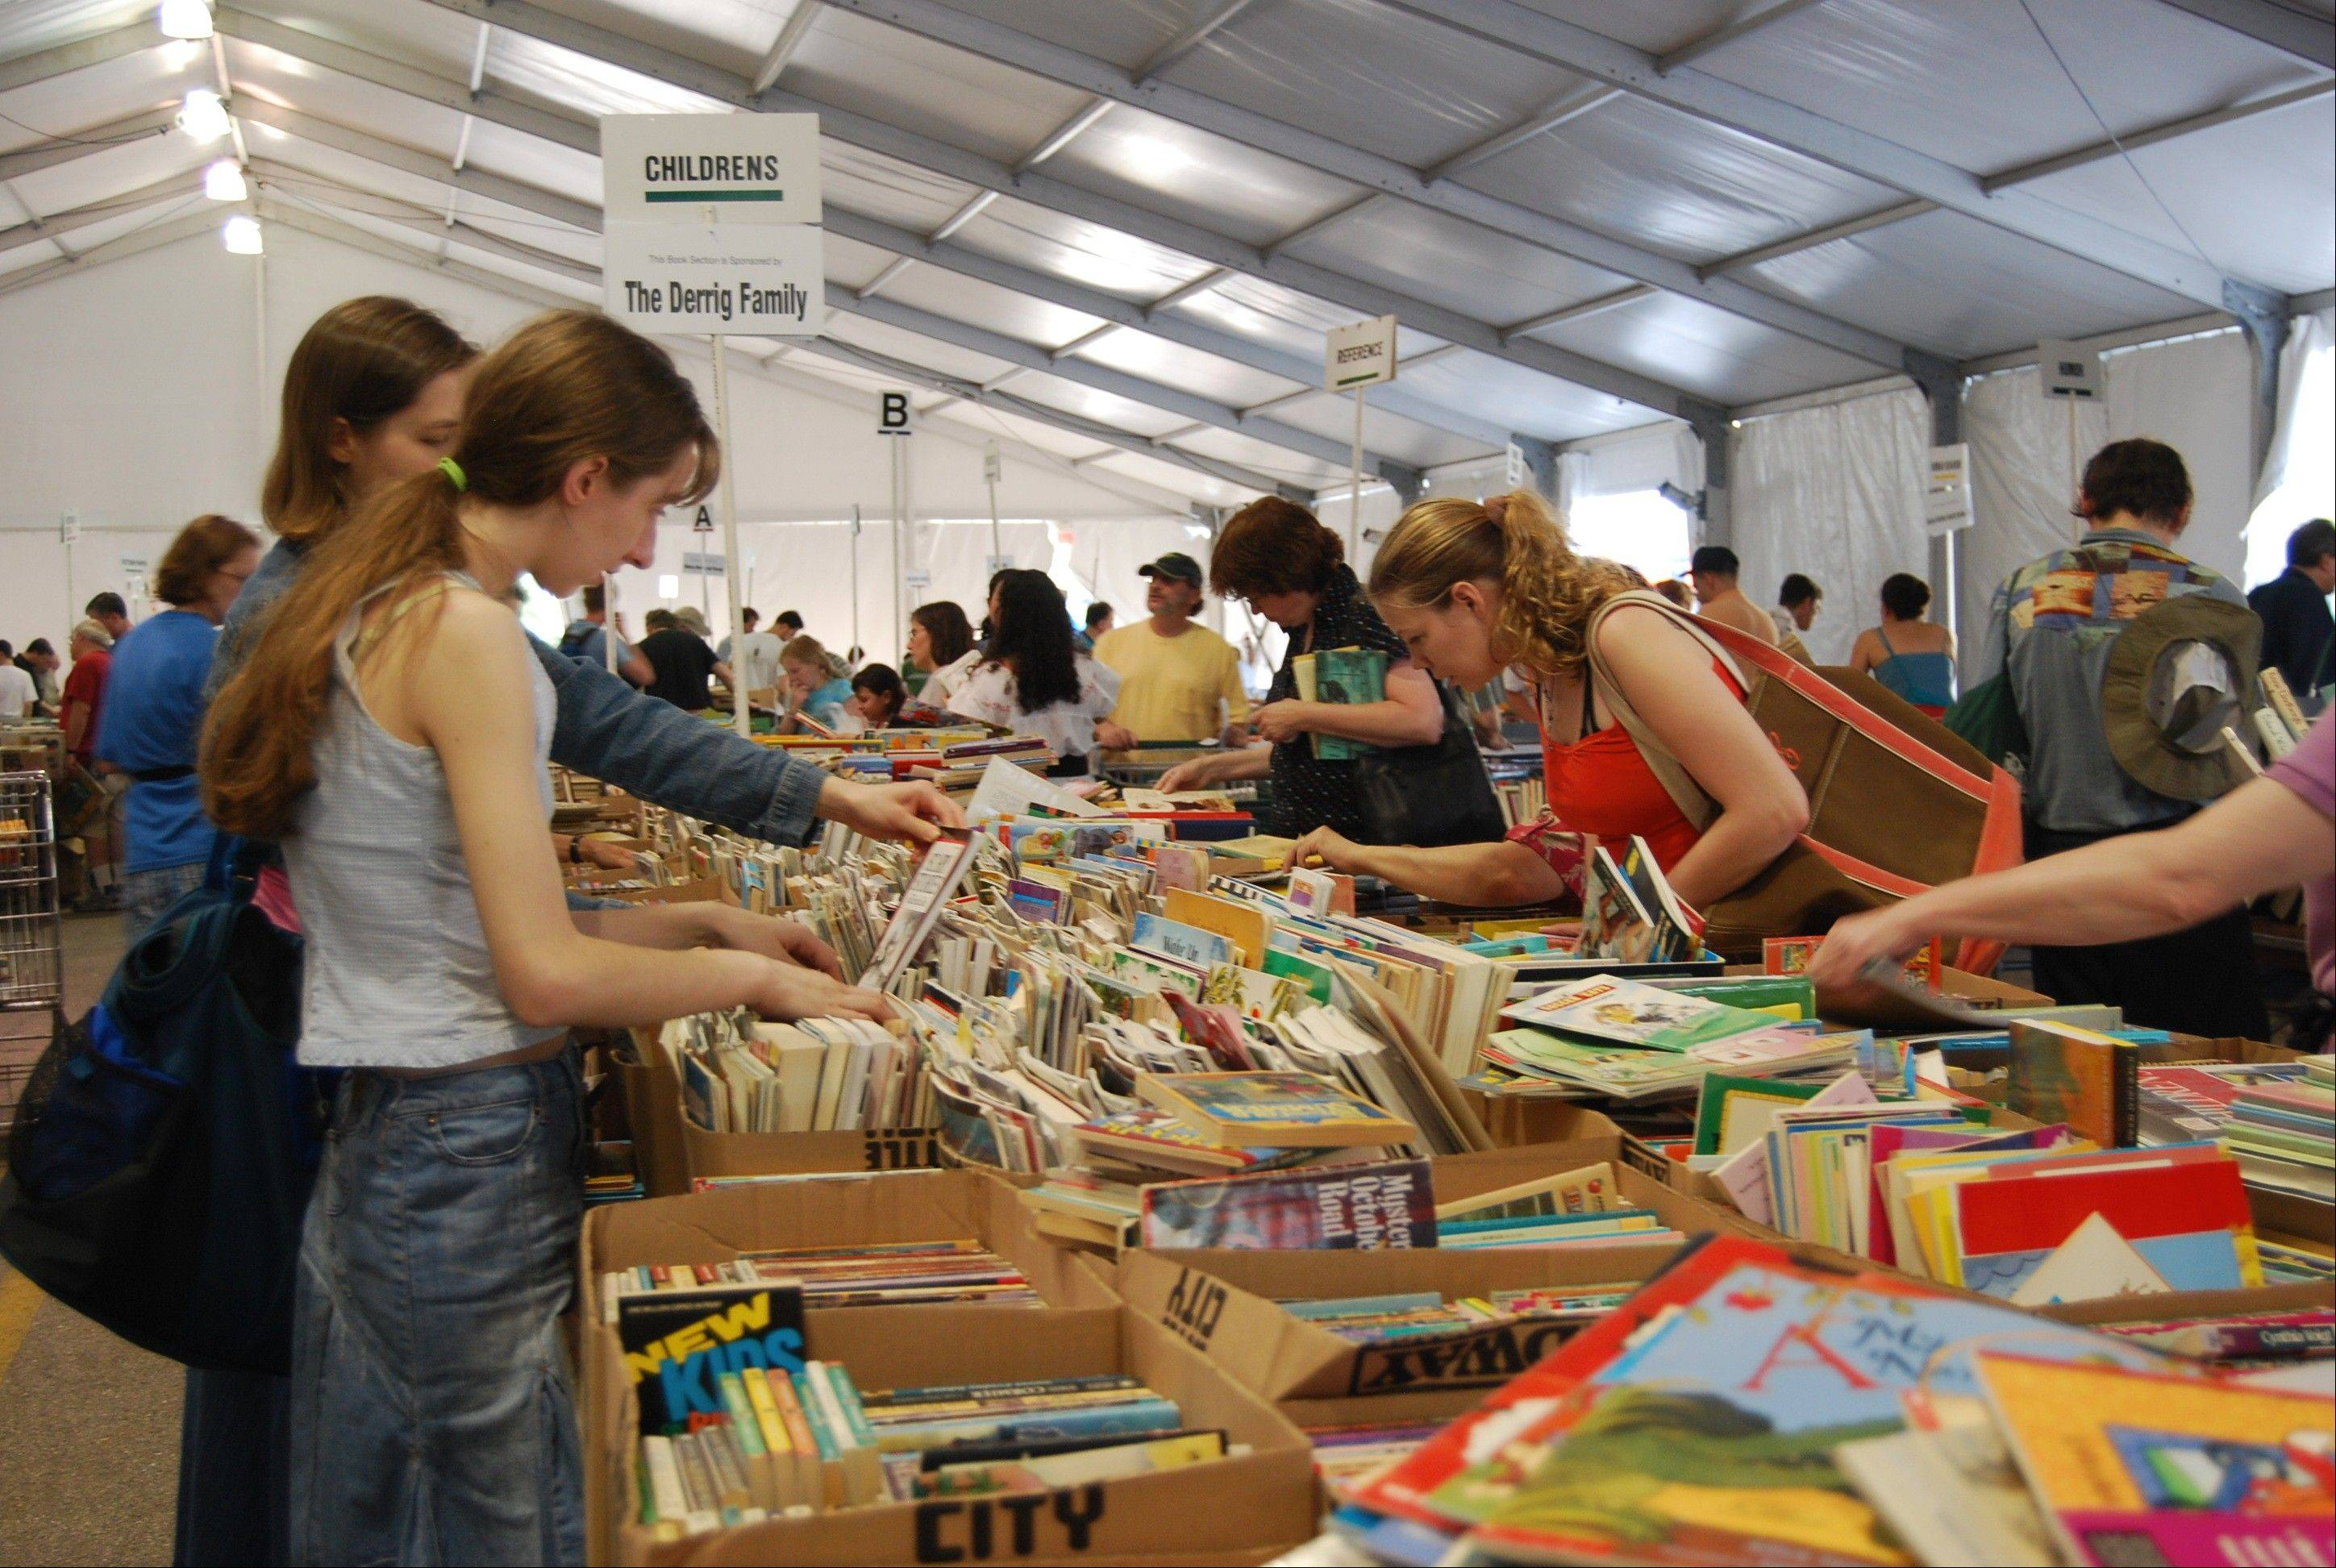 Famed Little City book fair moves closer to foundation's Palatine campus